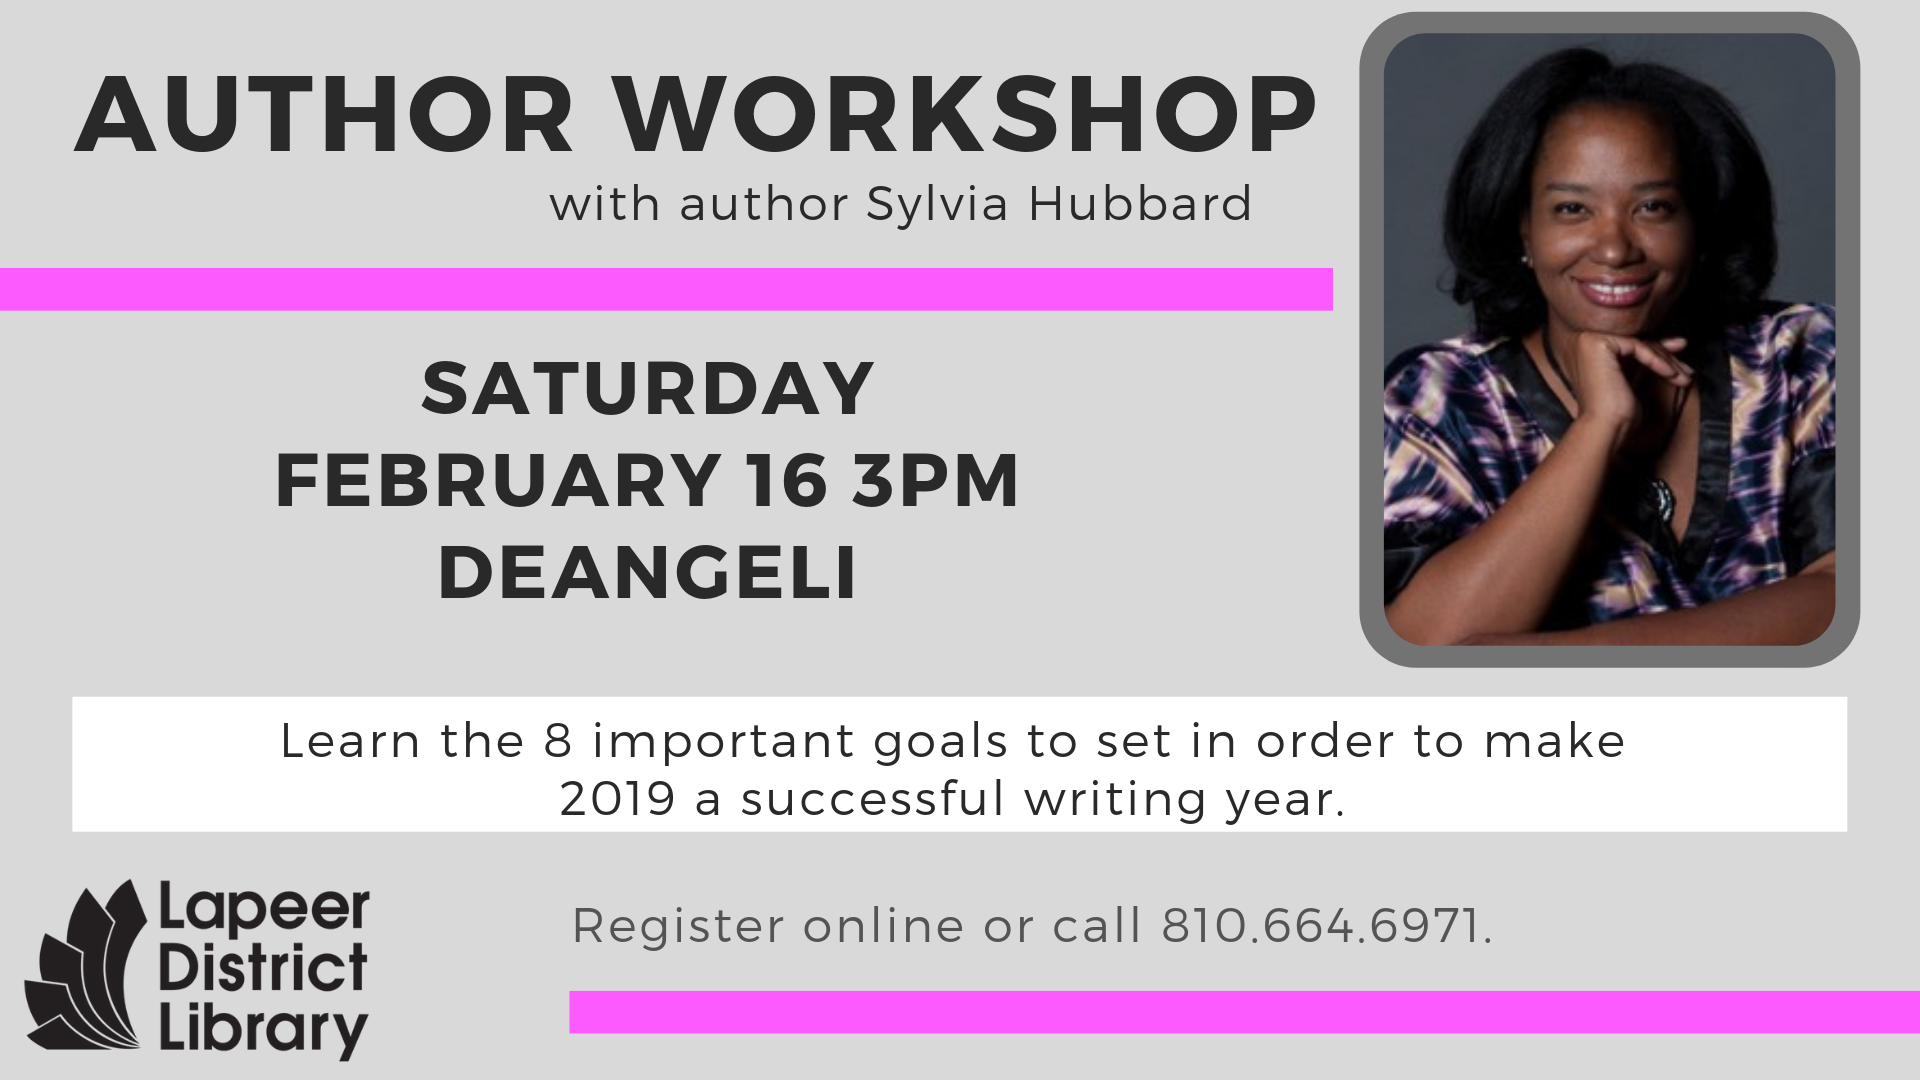 Author Workshop with author Sylvia Hubbard